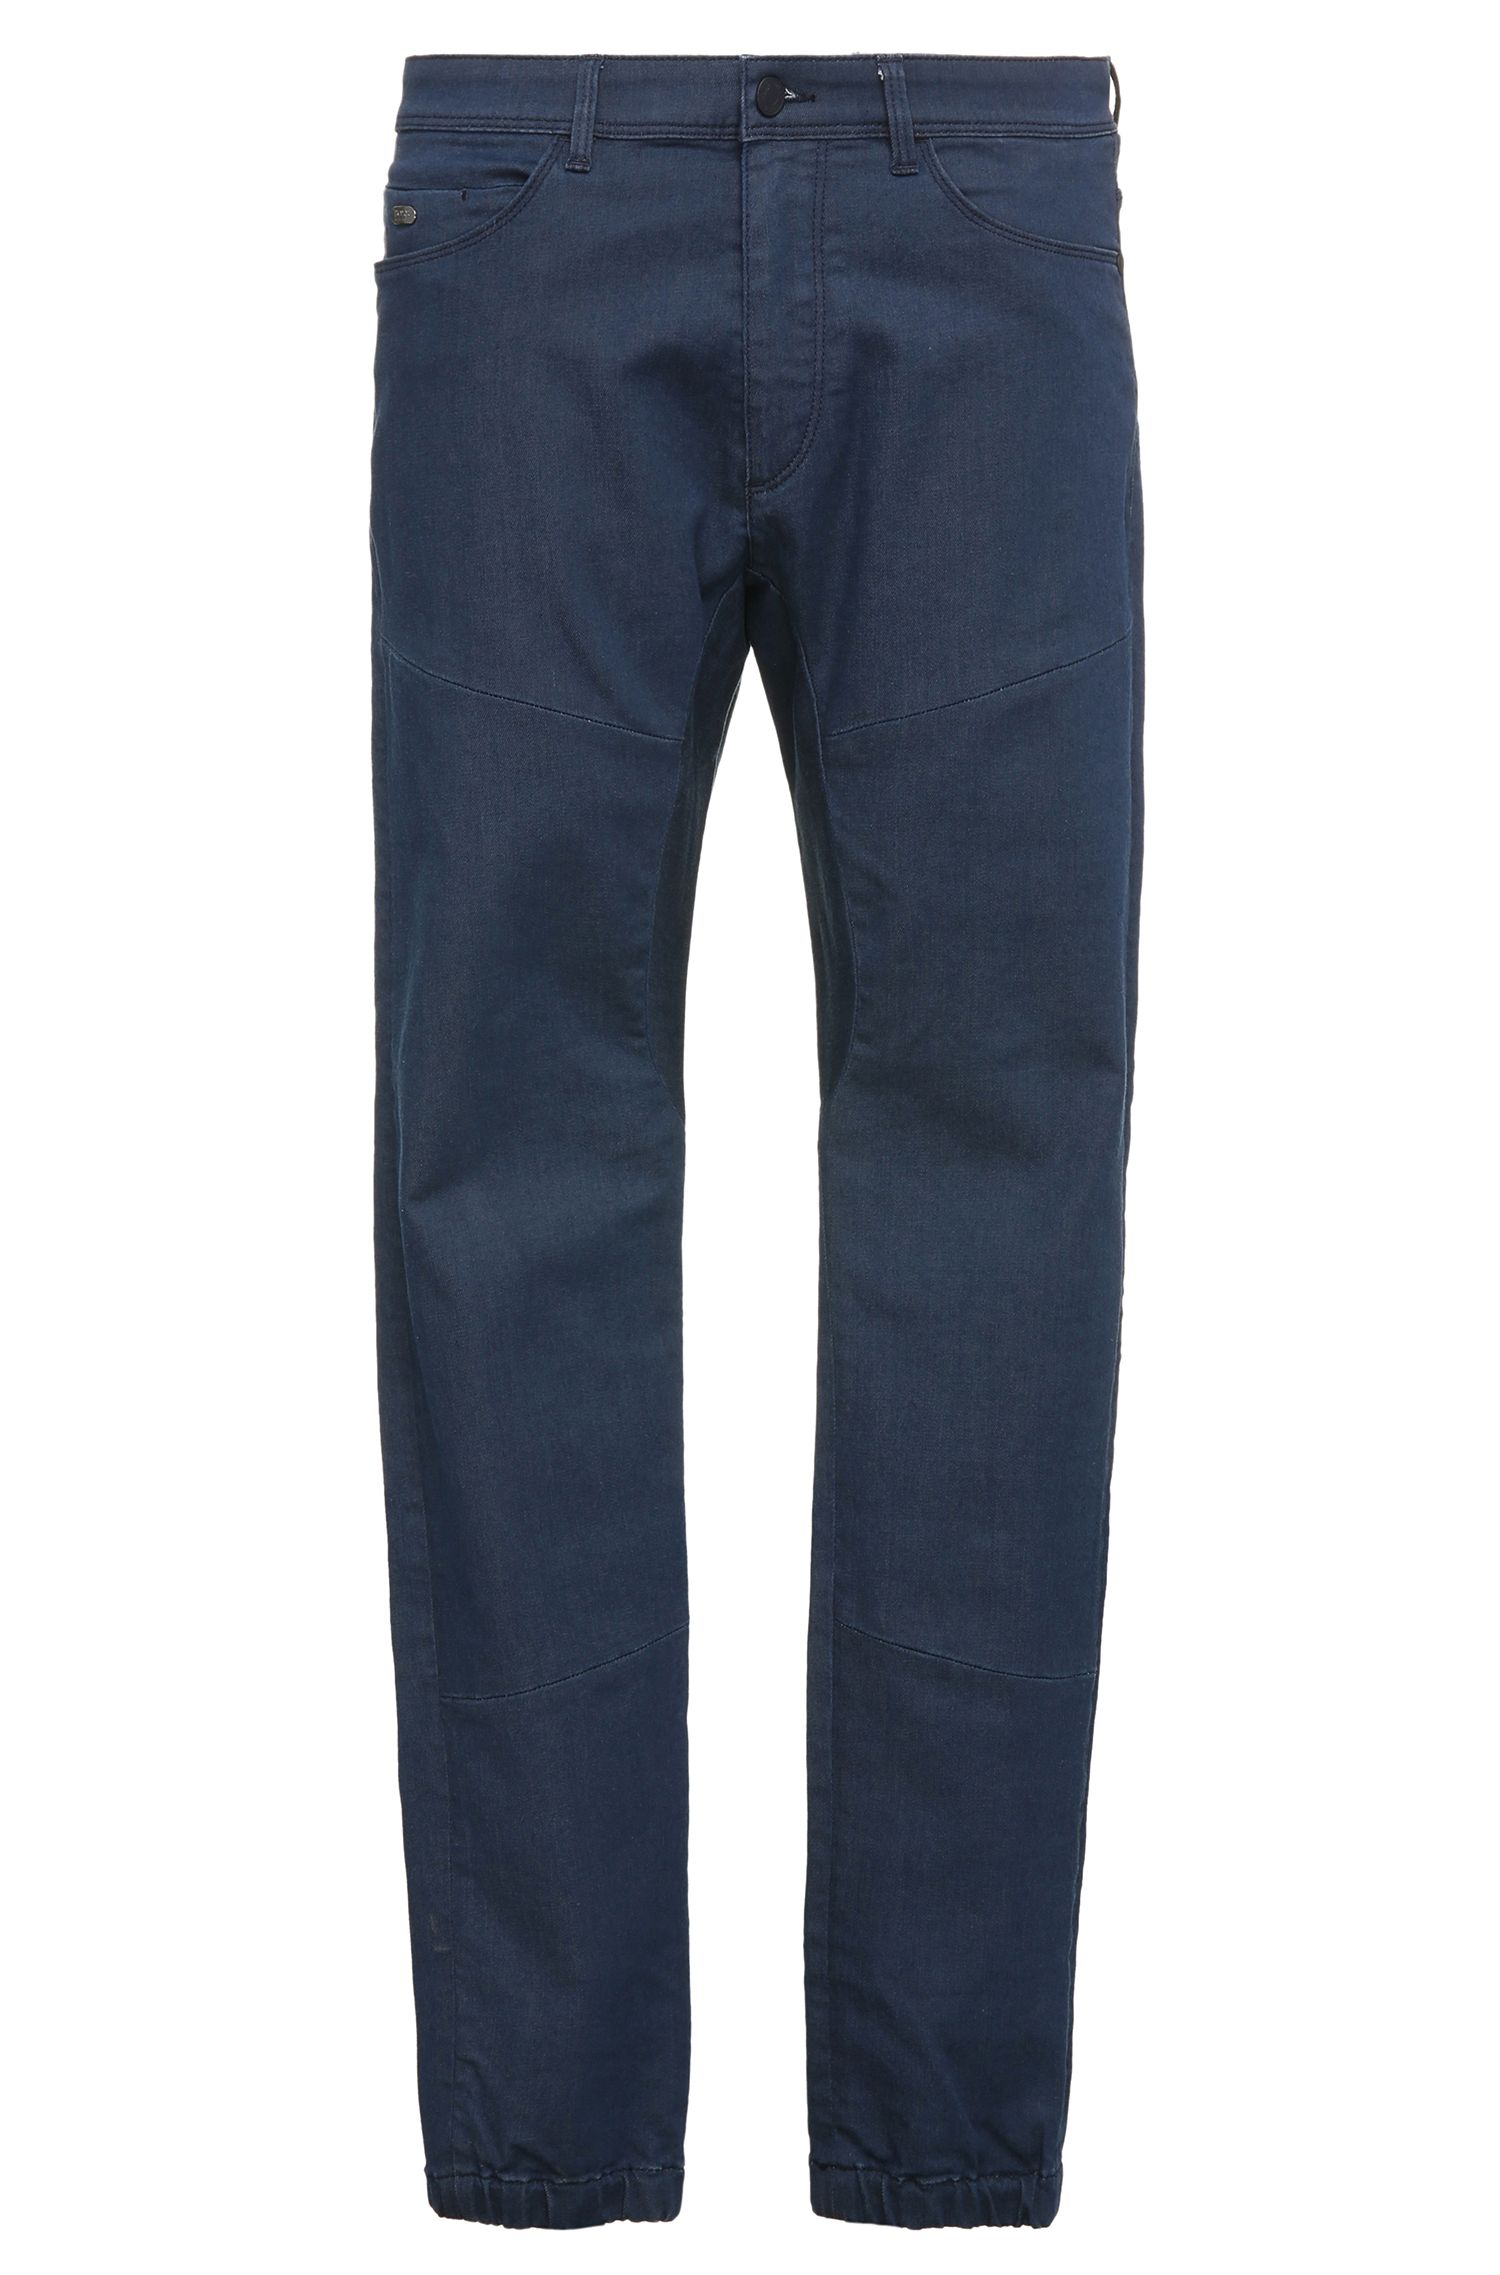 Stretch Cotton Blend Elastic Cuff Jeans, Tapered Fit | Danyel